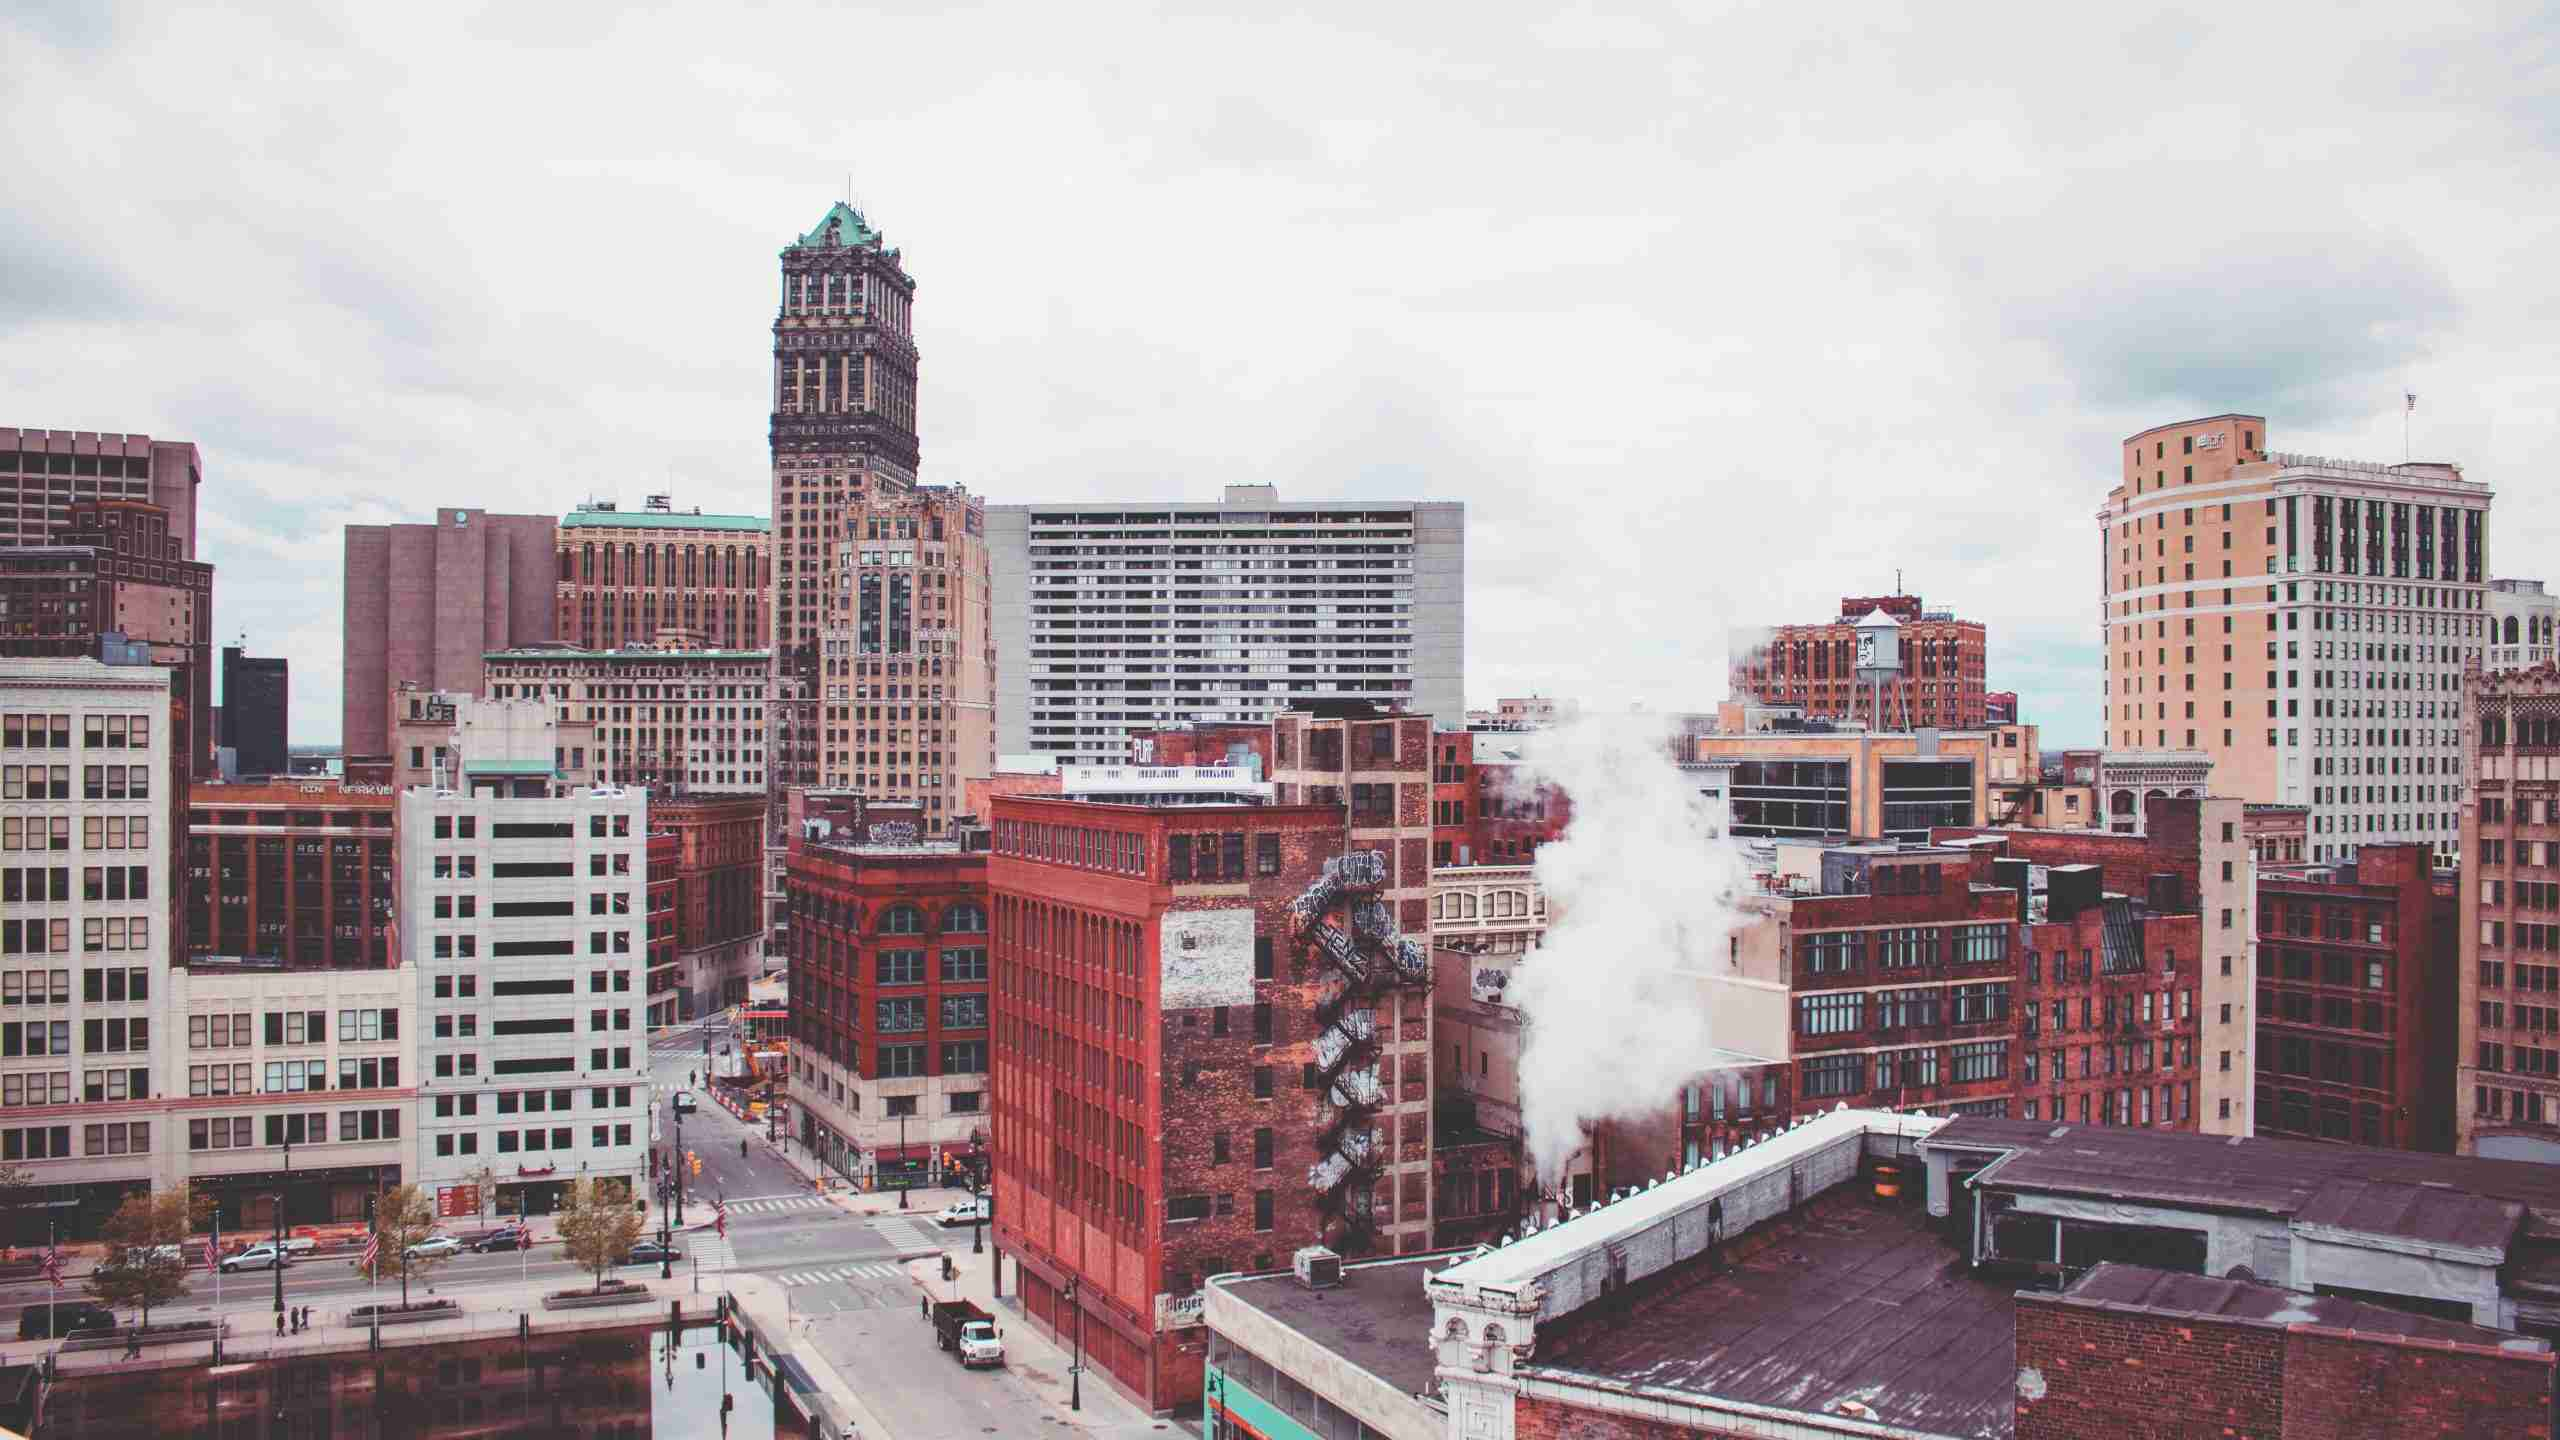 Technology Startups in the Midwest